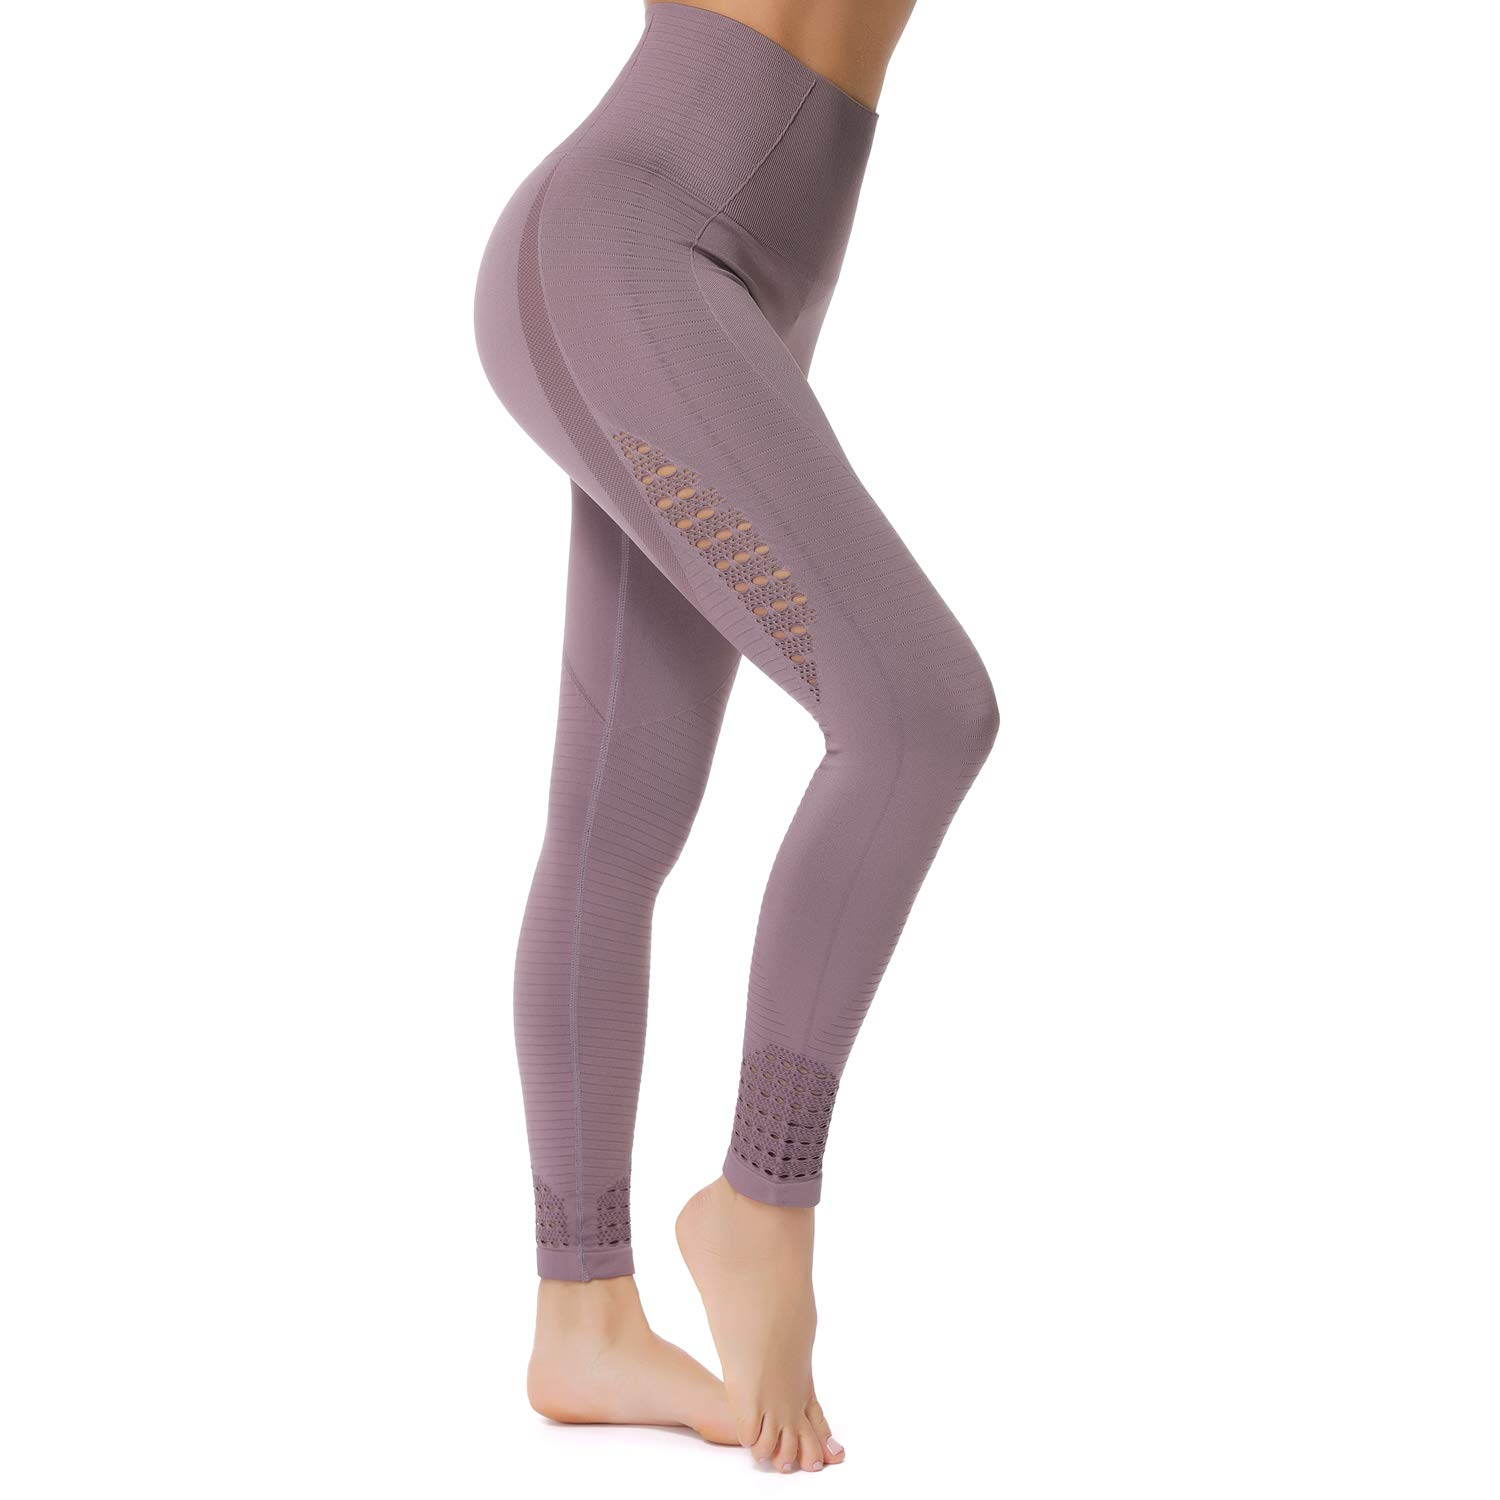 3 Deep Purple(Upgraded) RIOJOY Yoga Pants for Women Hollow Out Elastic Waist Tummy Control Stretchy Pants Fitness Leggings Gym Compression Sports Tights